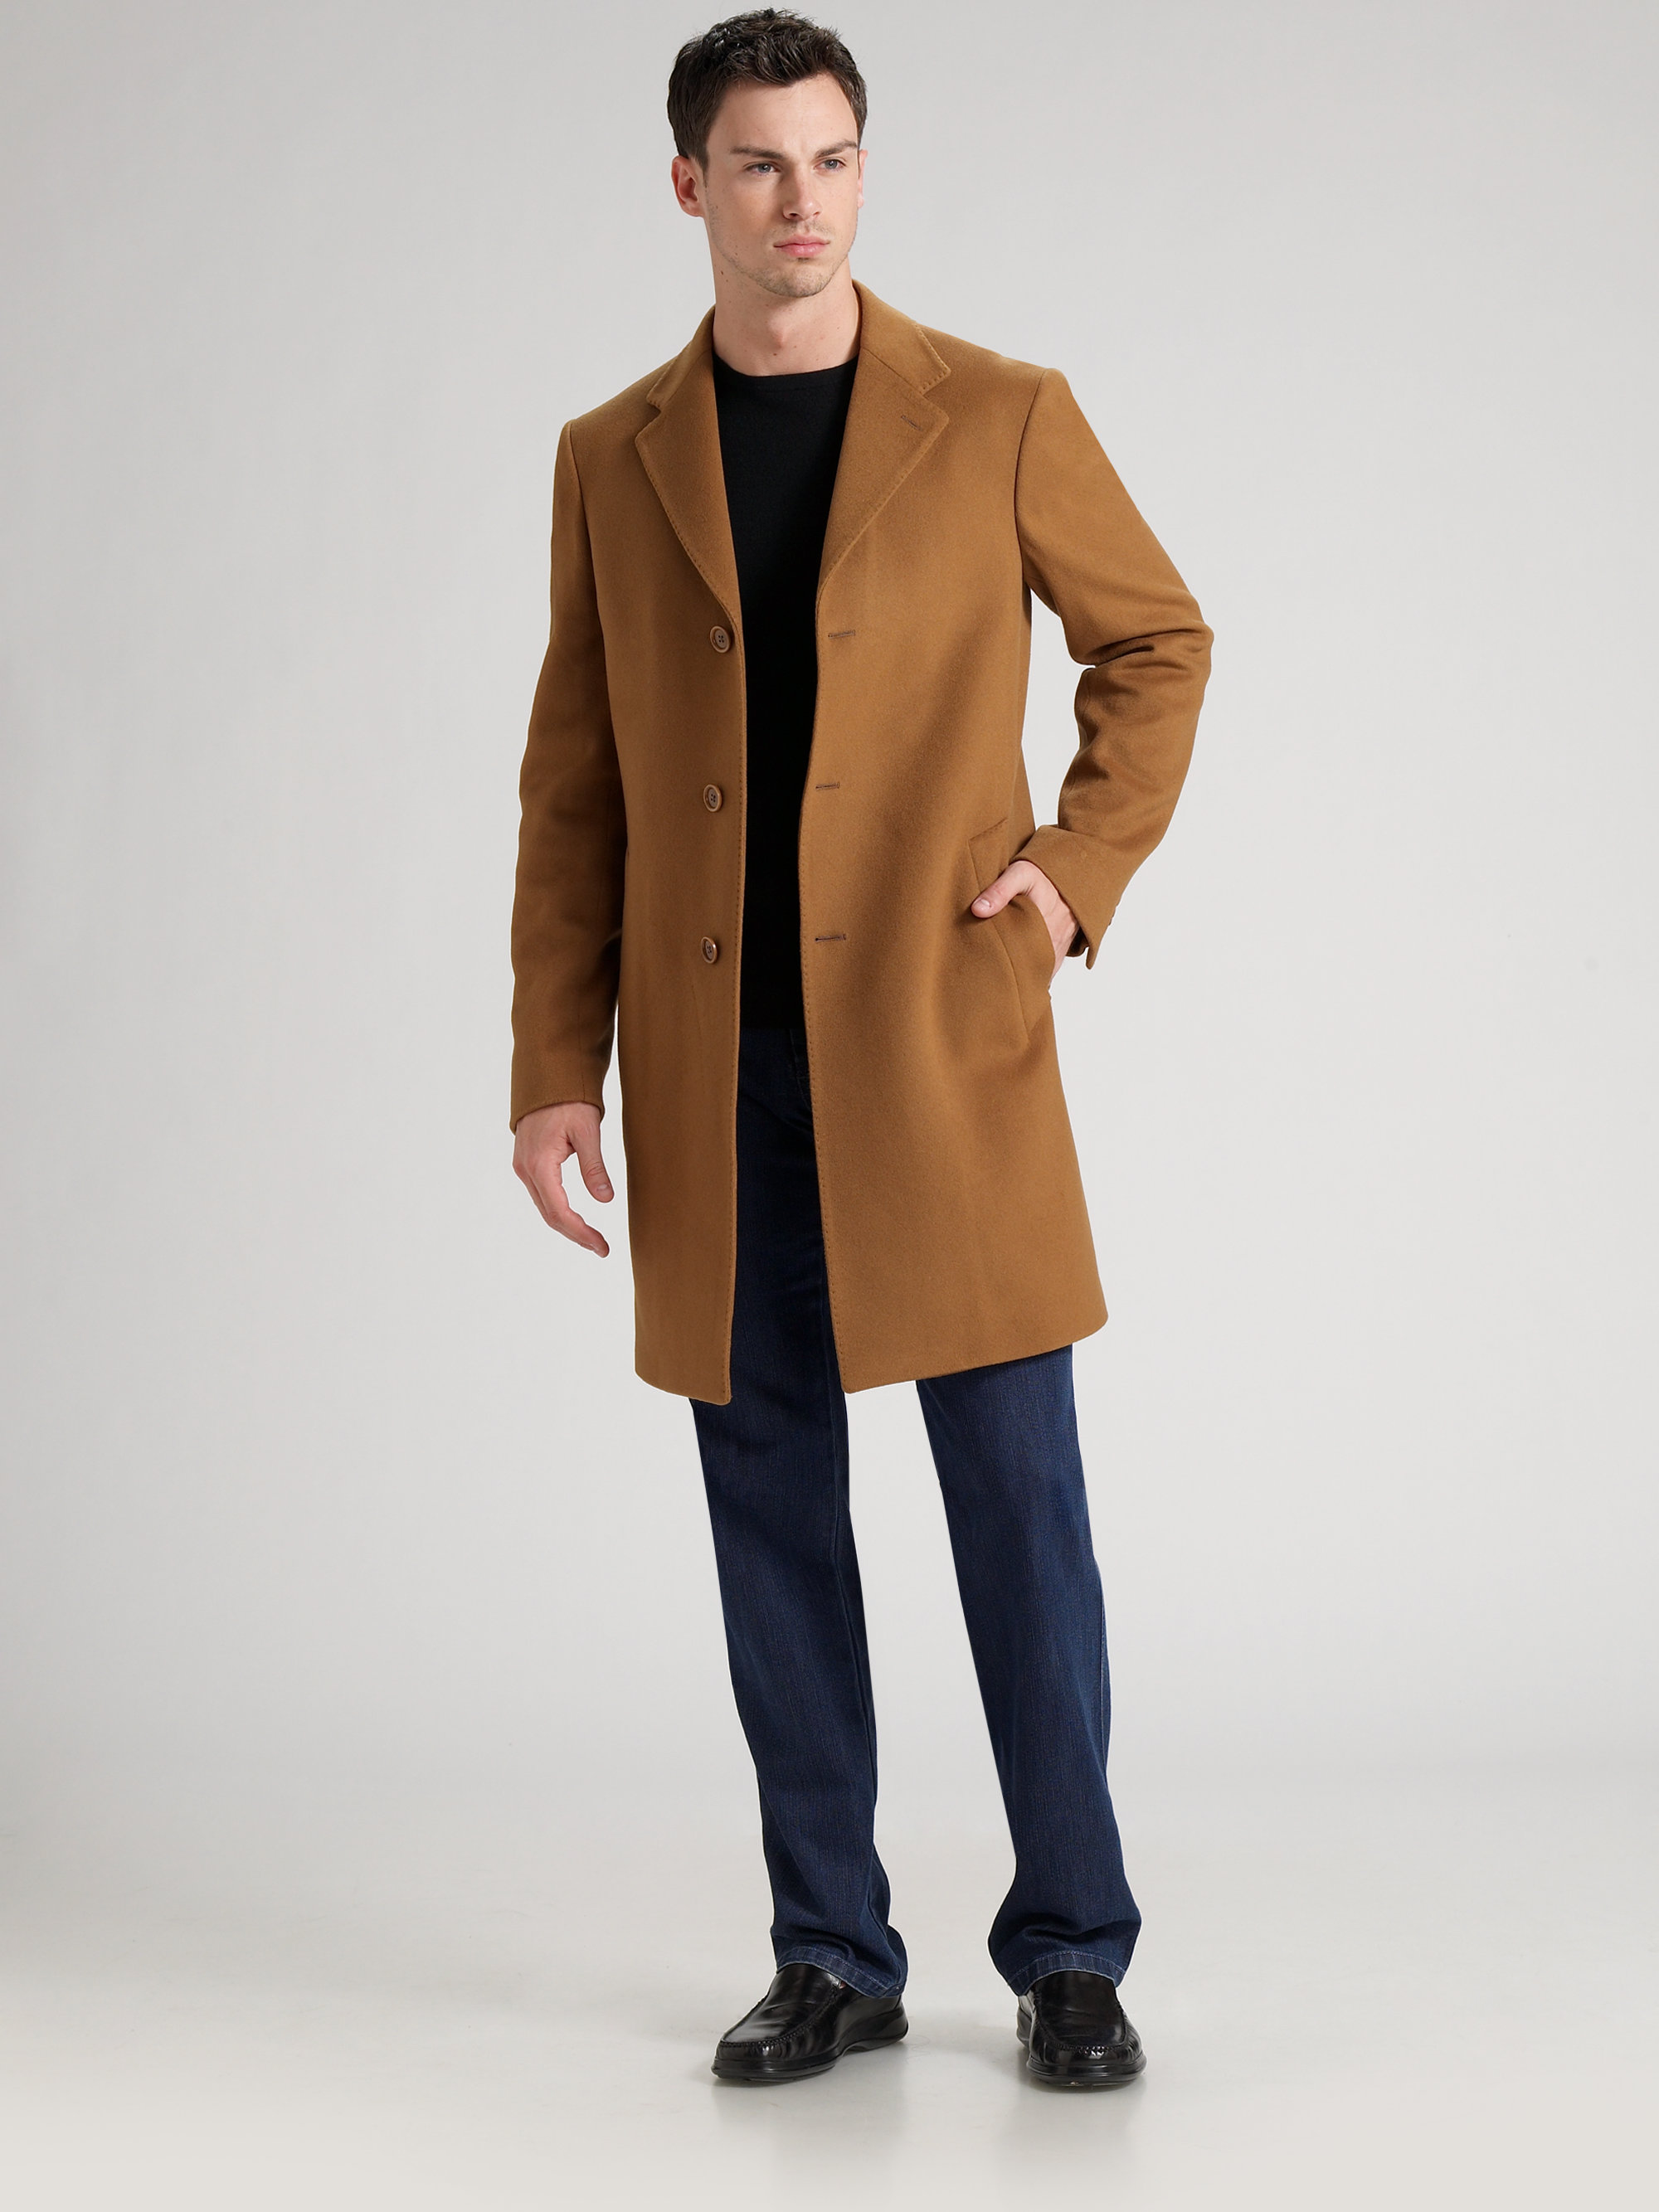 Lyst Saks Fifth Avenue Cashmere Topcoat In Brown For Men